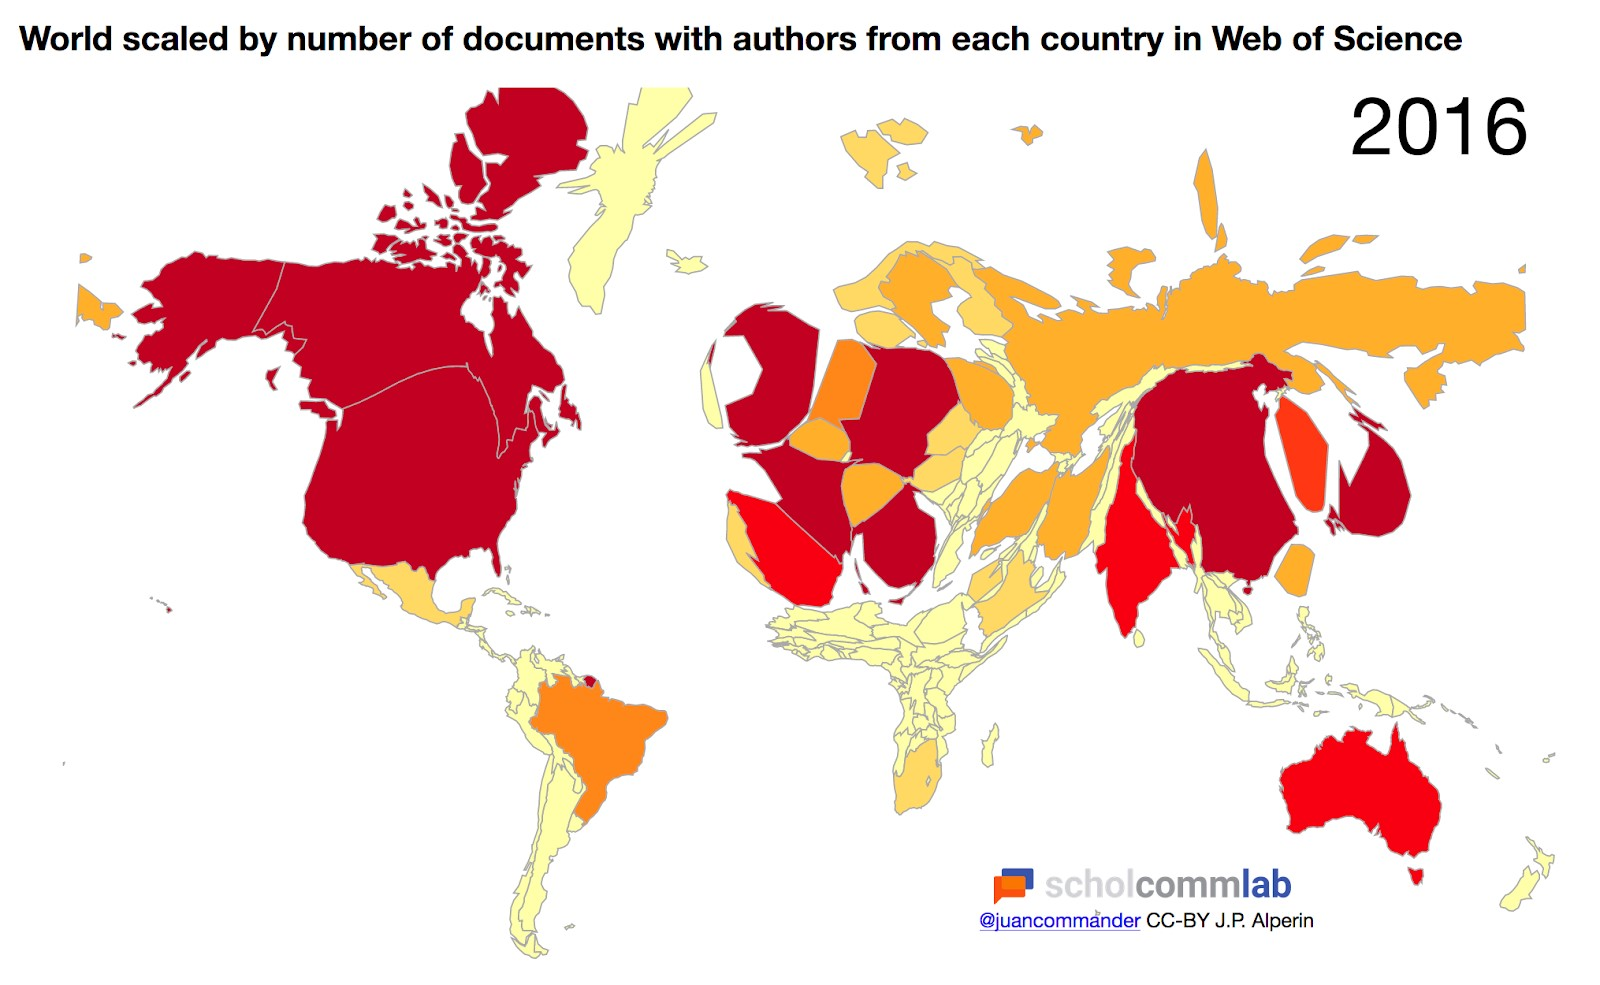 World scaled by number of documents with authors from each country in Web of Science.